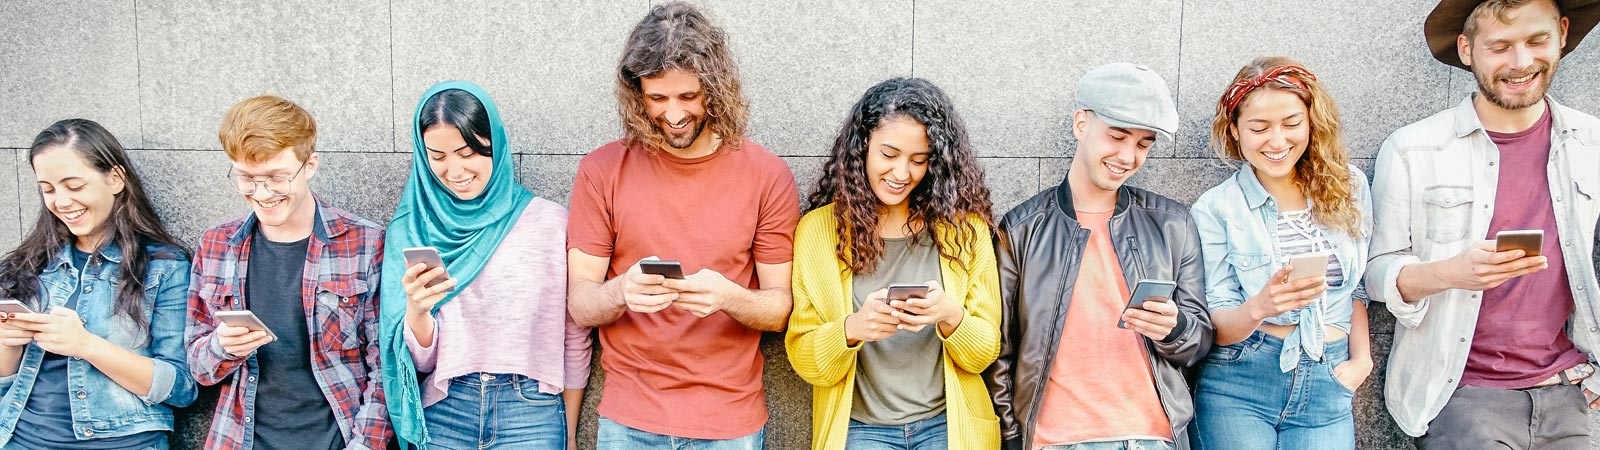 How to Engage and Communicate Effectively with a Generation Z Audience